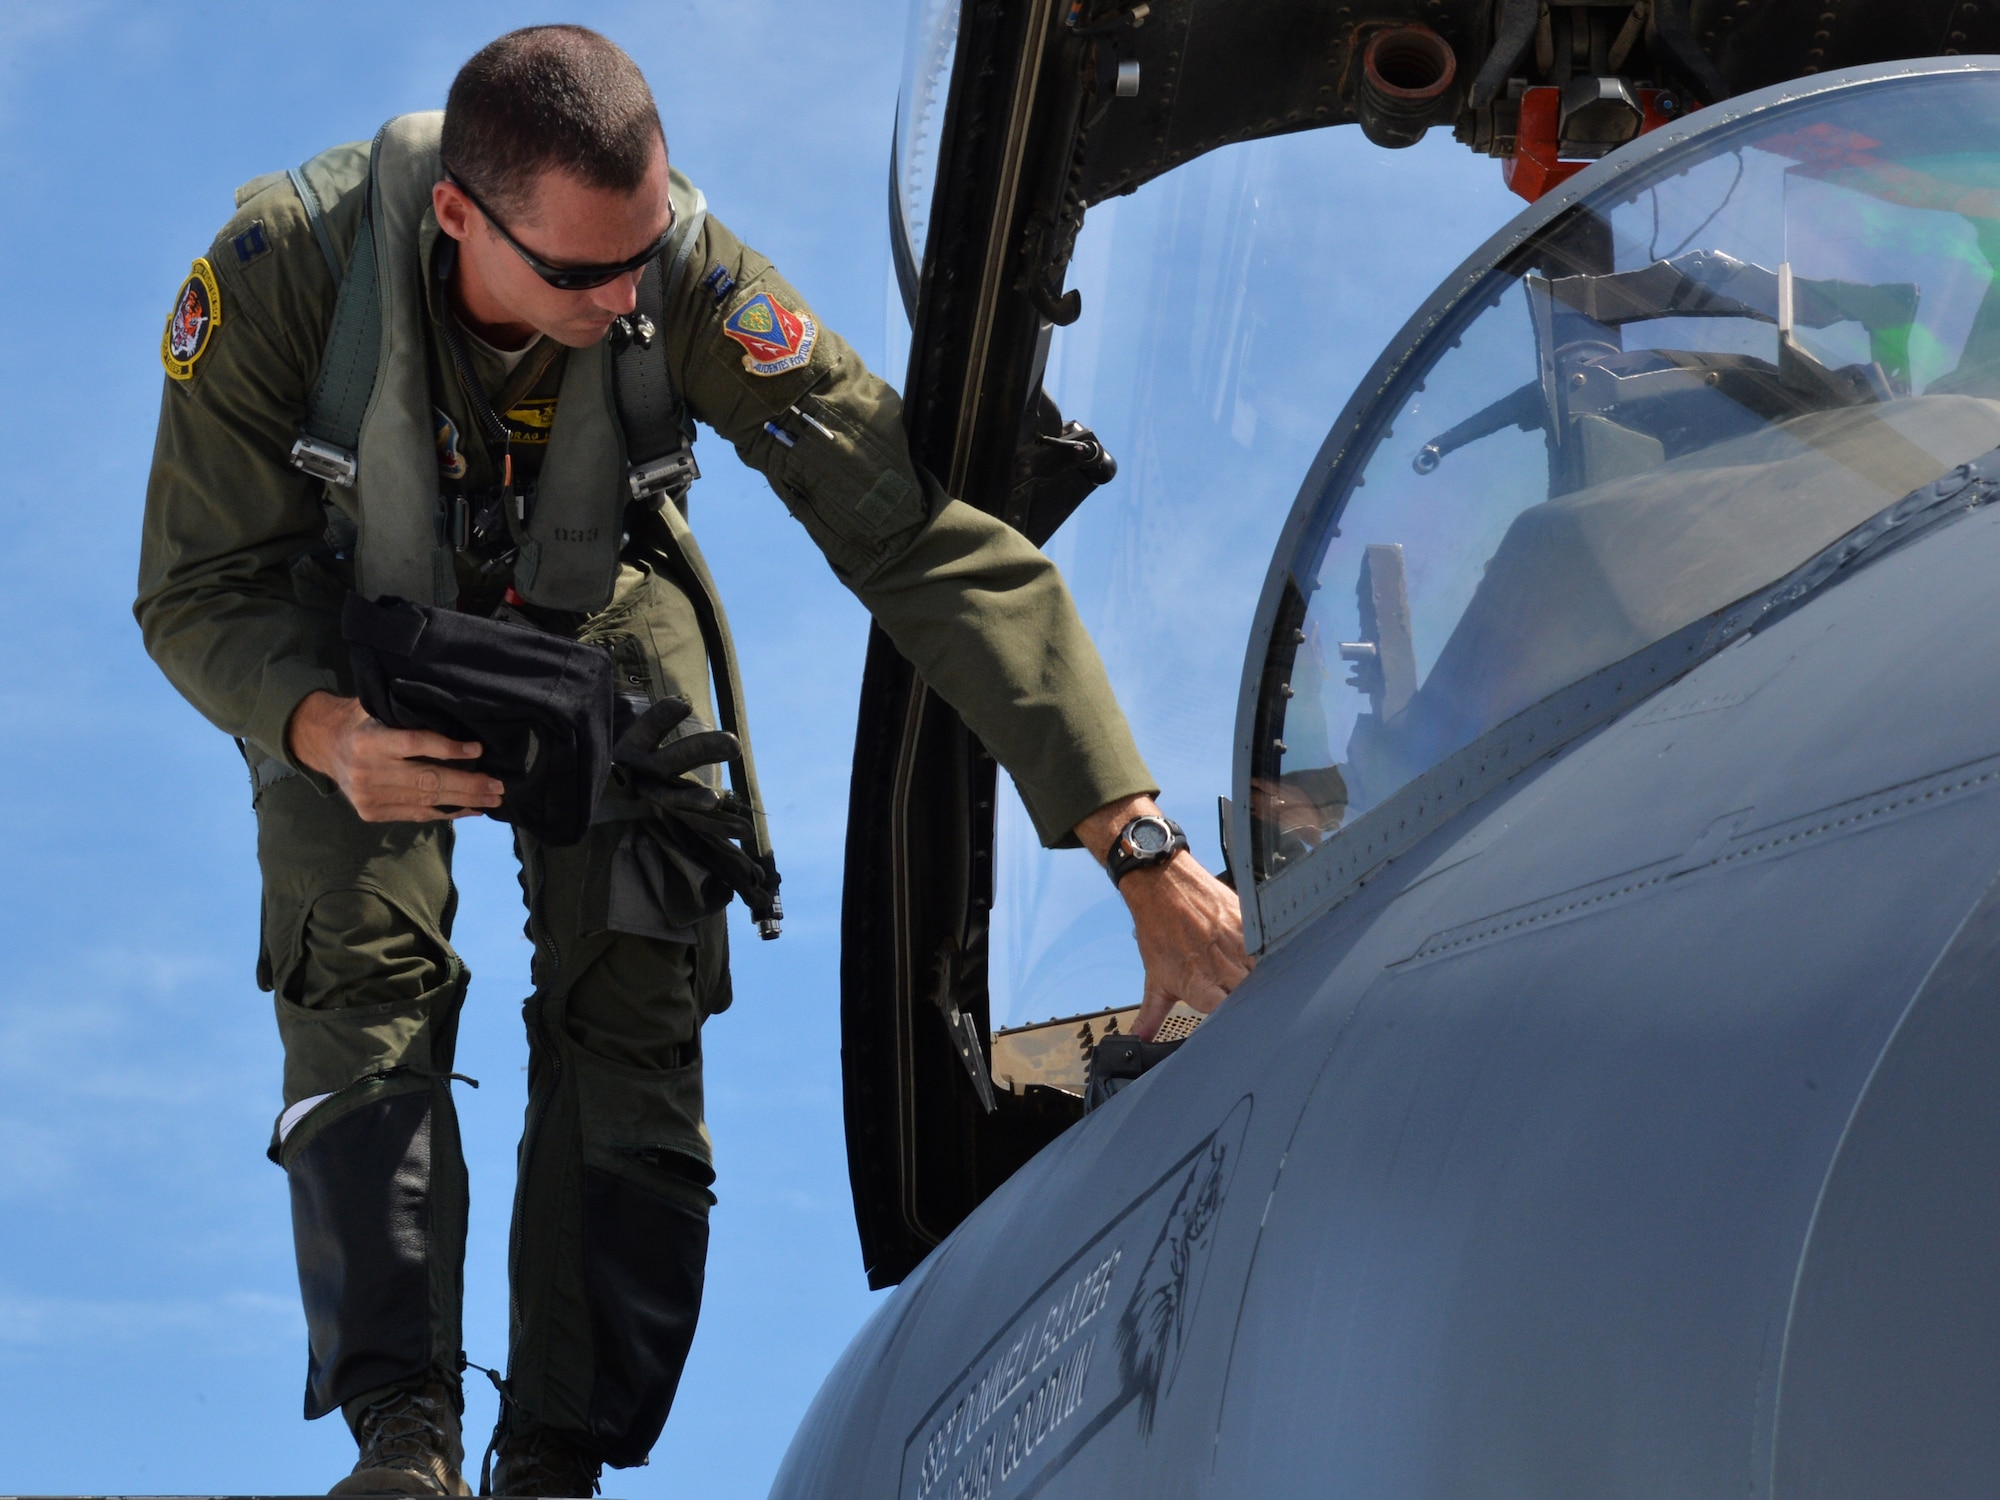 Capt. Patrick Hickie III prepares to enter an aircraft during a mission July 16, 2014, at Joint Base Pearl Harbor-Hickam, Hawaii. The 391st Fighter Squadron is currently on a two-month deployment here from Mountain Home Air Force Base, Idaho. While here, the squadron's F-15E Strike Eagles have participated in Rim of the Pacific 2014 exercise missions. RIMPAC is a U.S. Pacific Command-hosted biennial multinational maritime exercise designed to foster and sustain international cooperation on the security of the world's oceans. Hickie is a 391st FS F-15E weapon systems officer. (U.S. Air Force photo/Staff Sgt. Alexander Martinez)